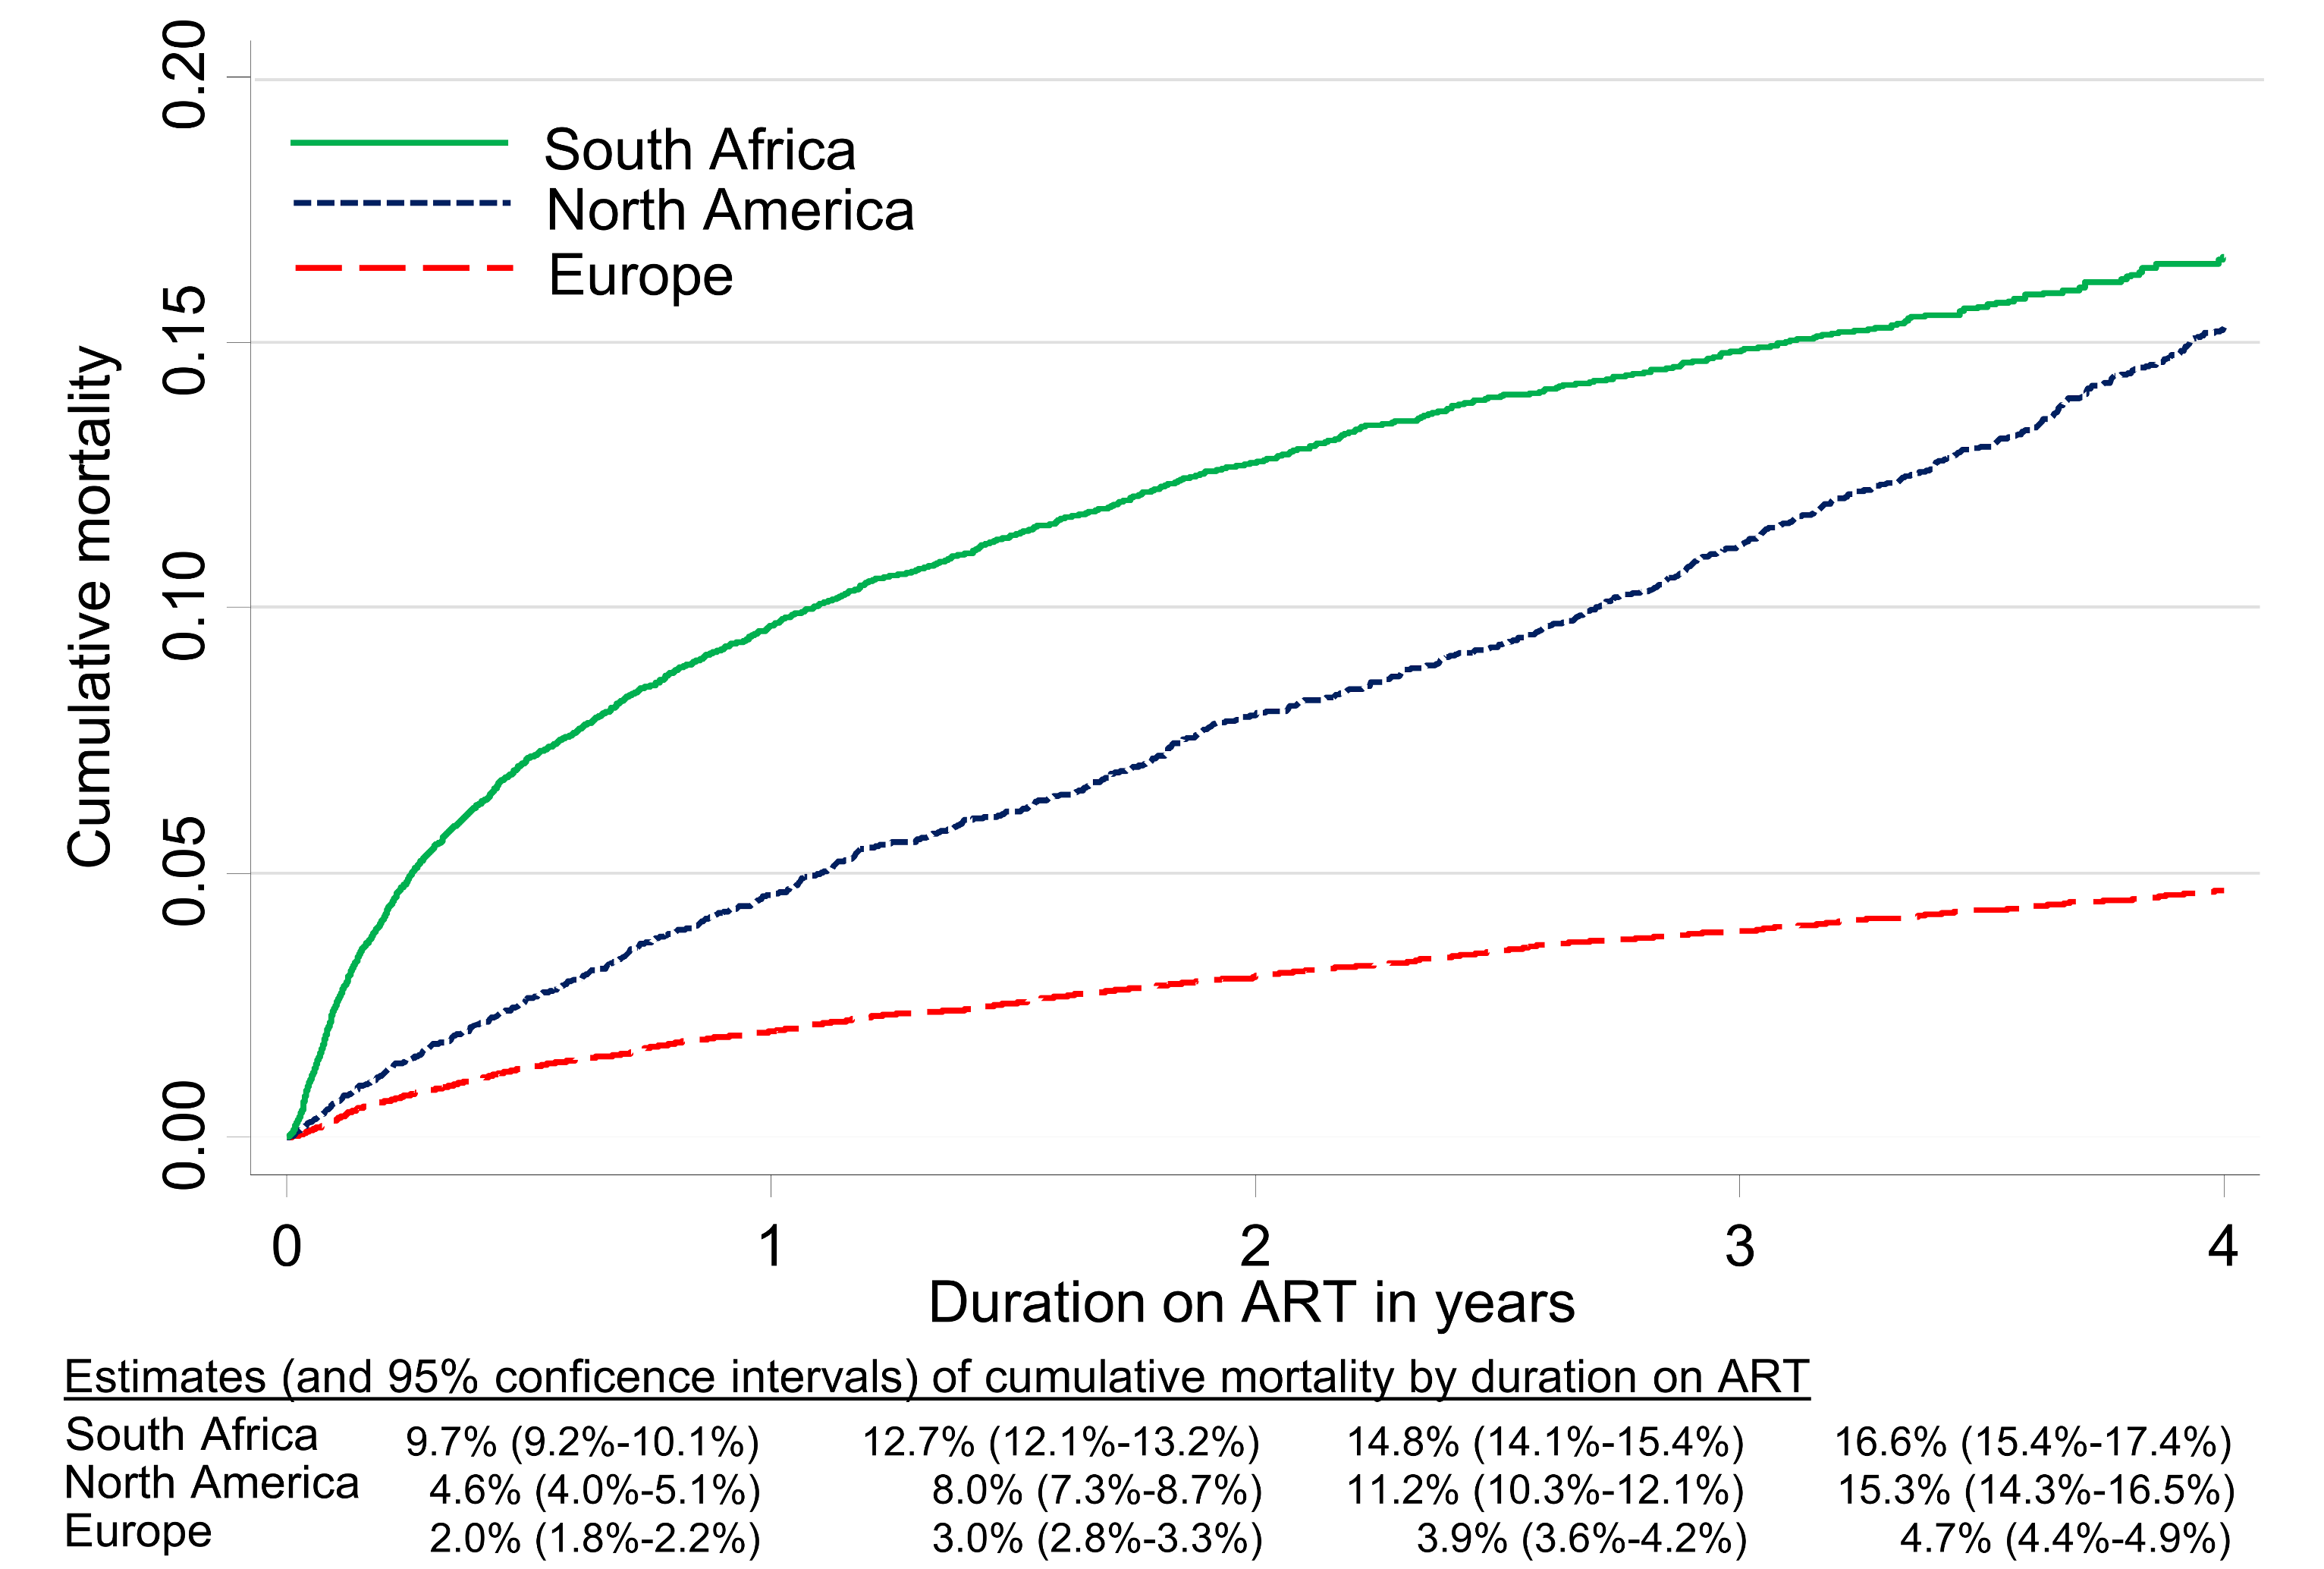 Cumulative incidence of mortality up to four years after start of ART by region, corrected in South Africa for mortality under-ascertainment.